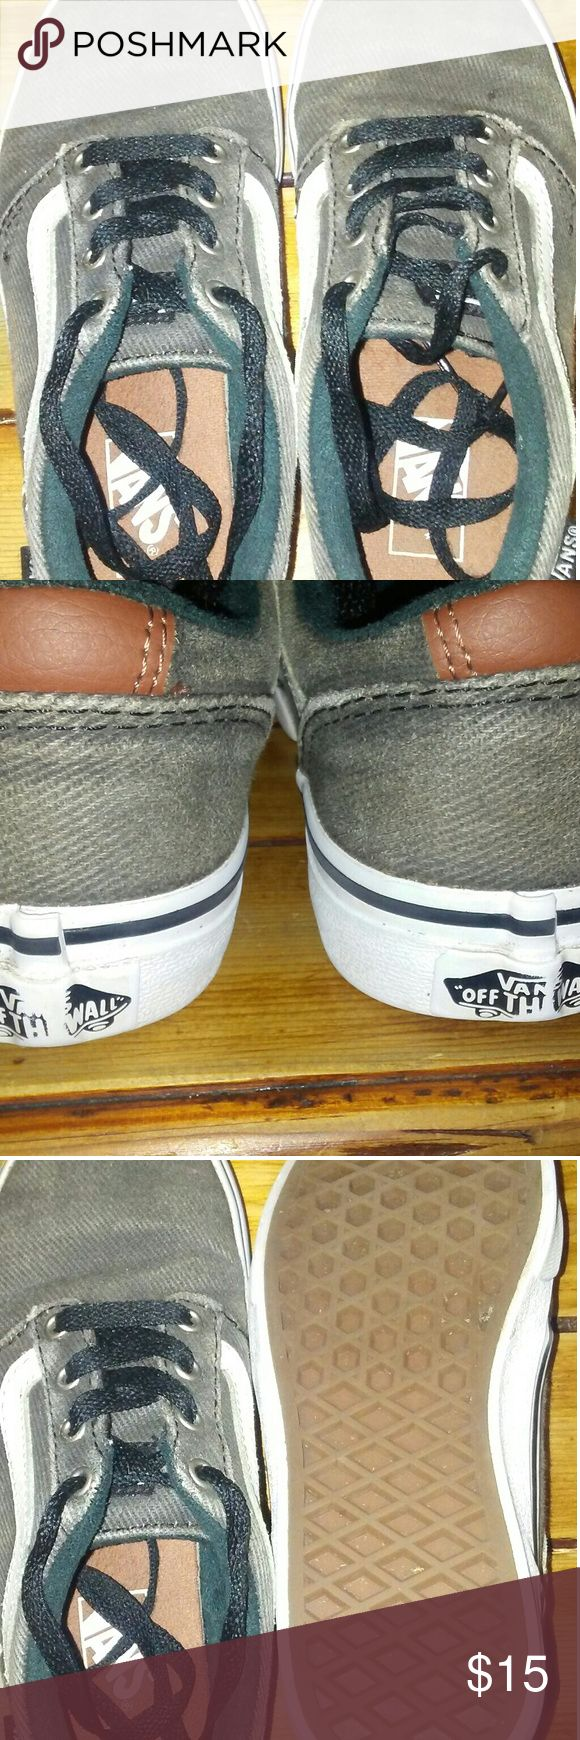 Boys Vans Off The Wall Shoes GUC Gray Vans, worn about 5 times before he outgrew them. Vans Shoes Sneakers